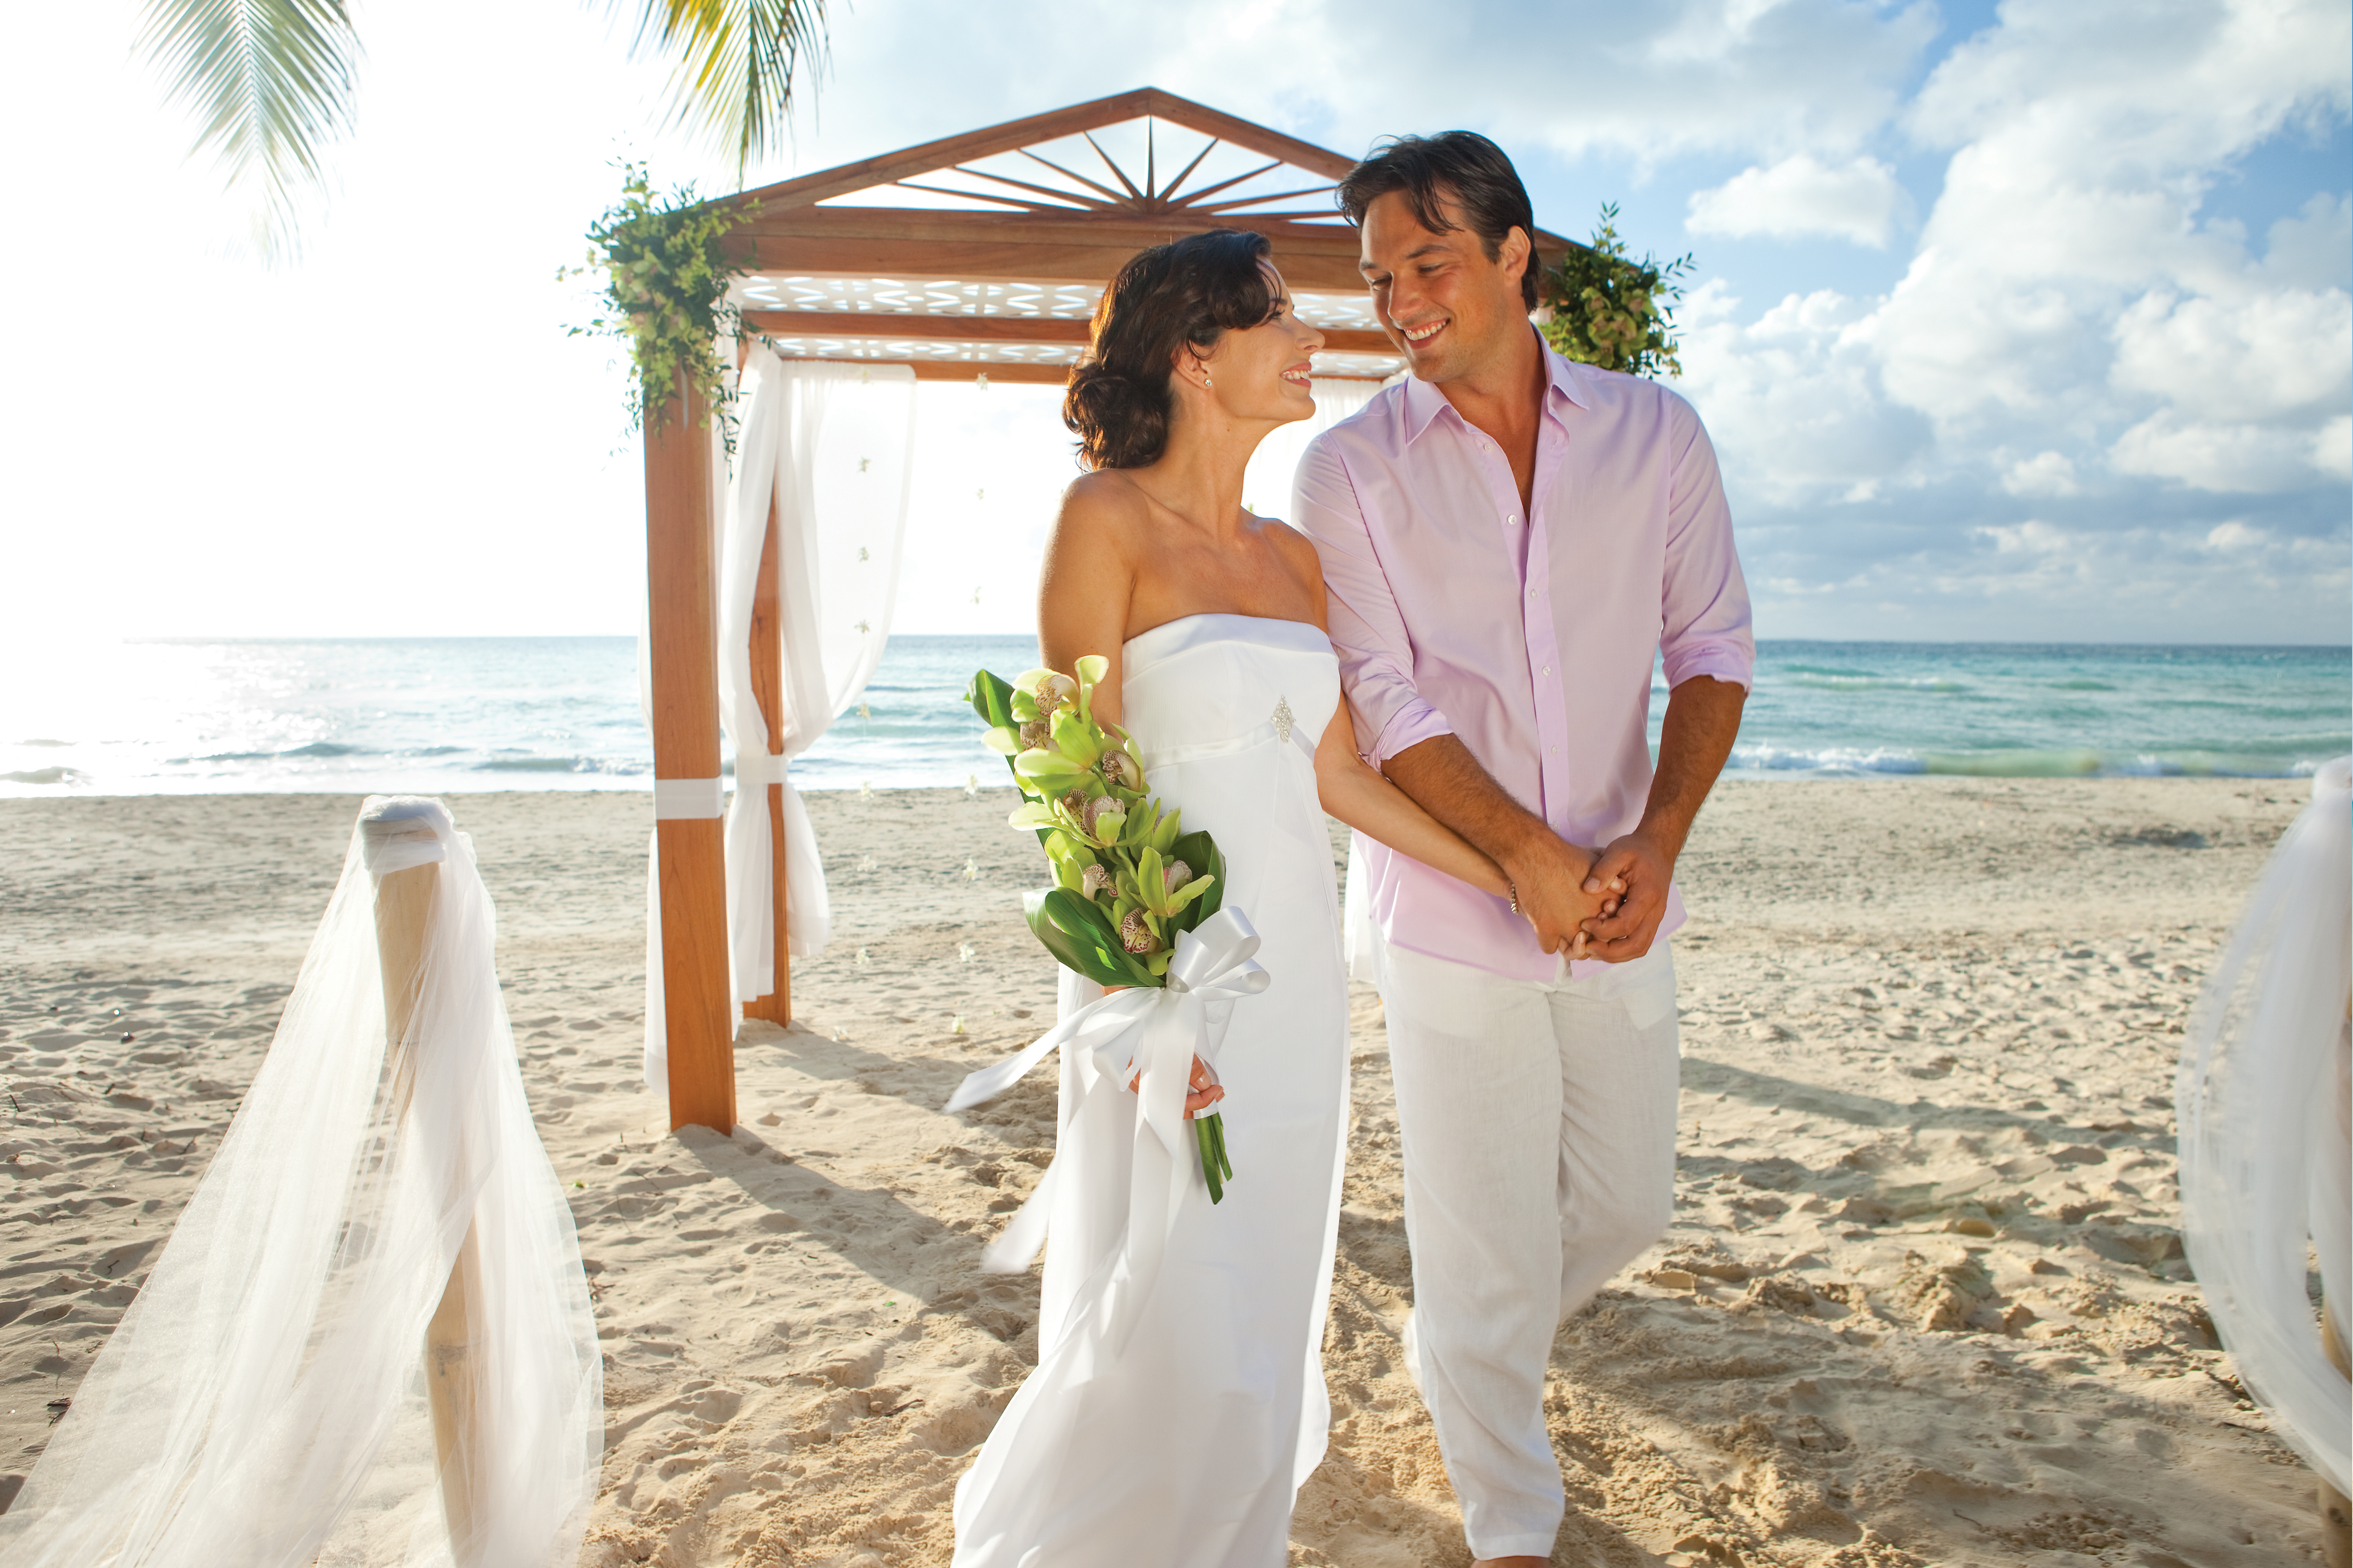 Travel Agency All-Inclusive Resort Couples Swept Away 51